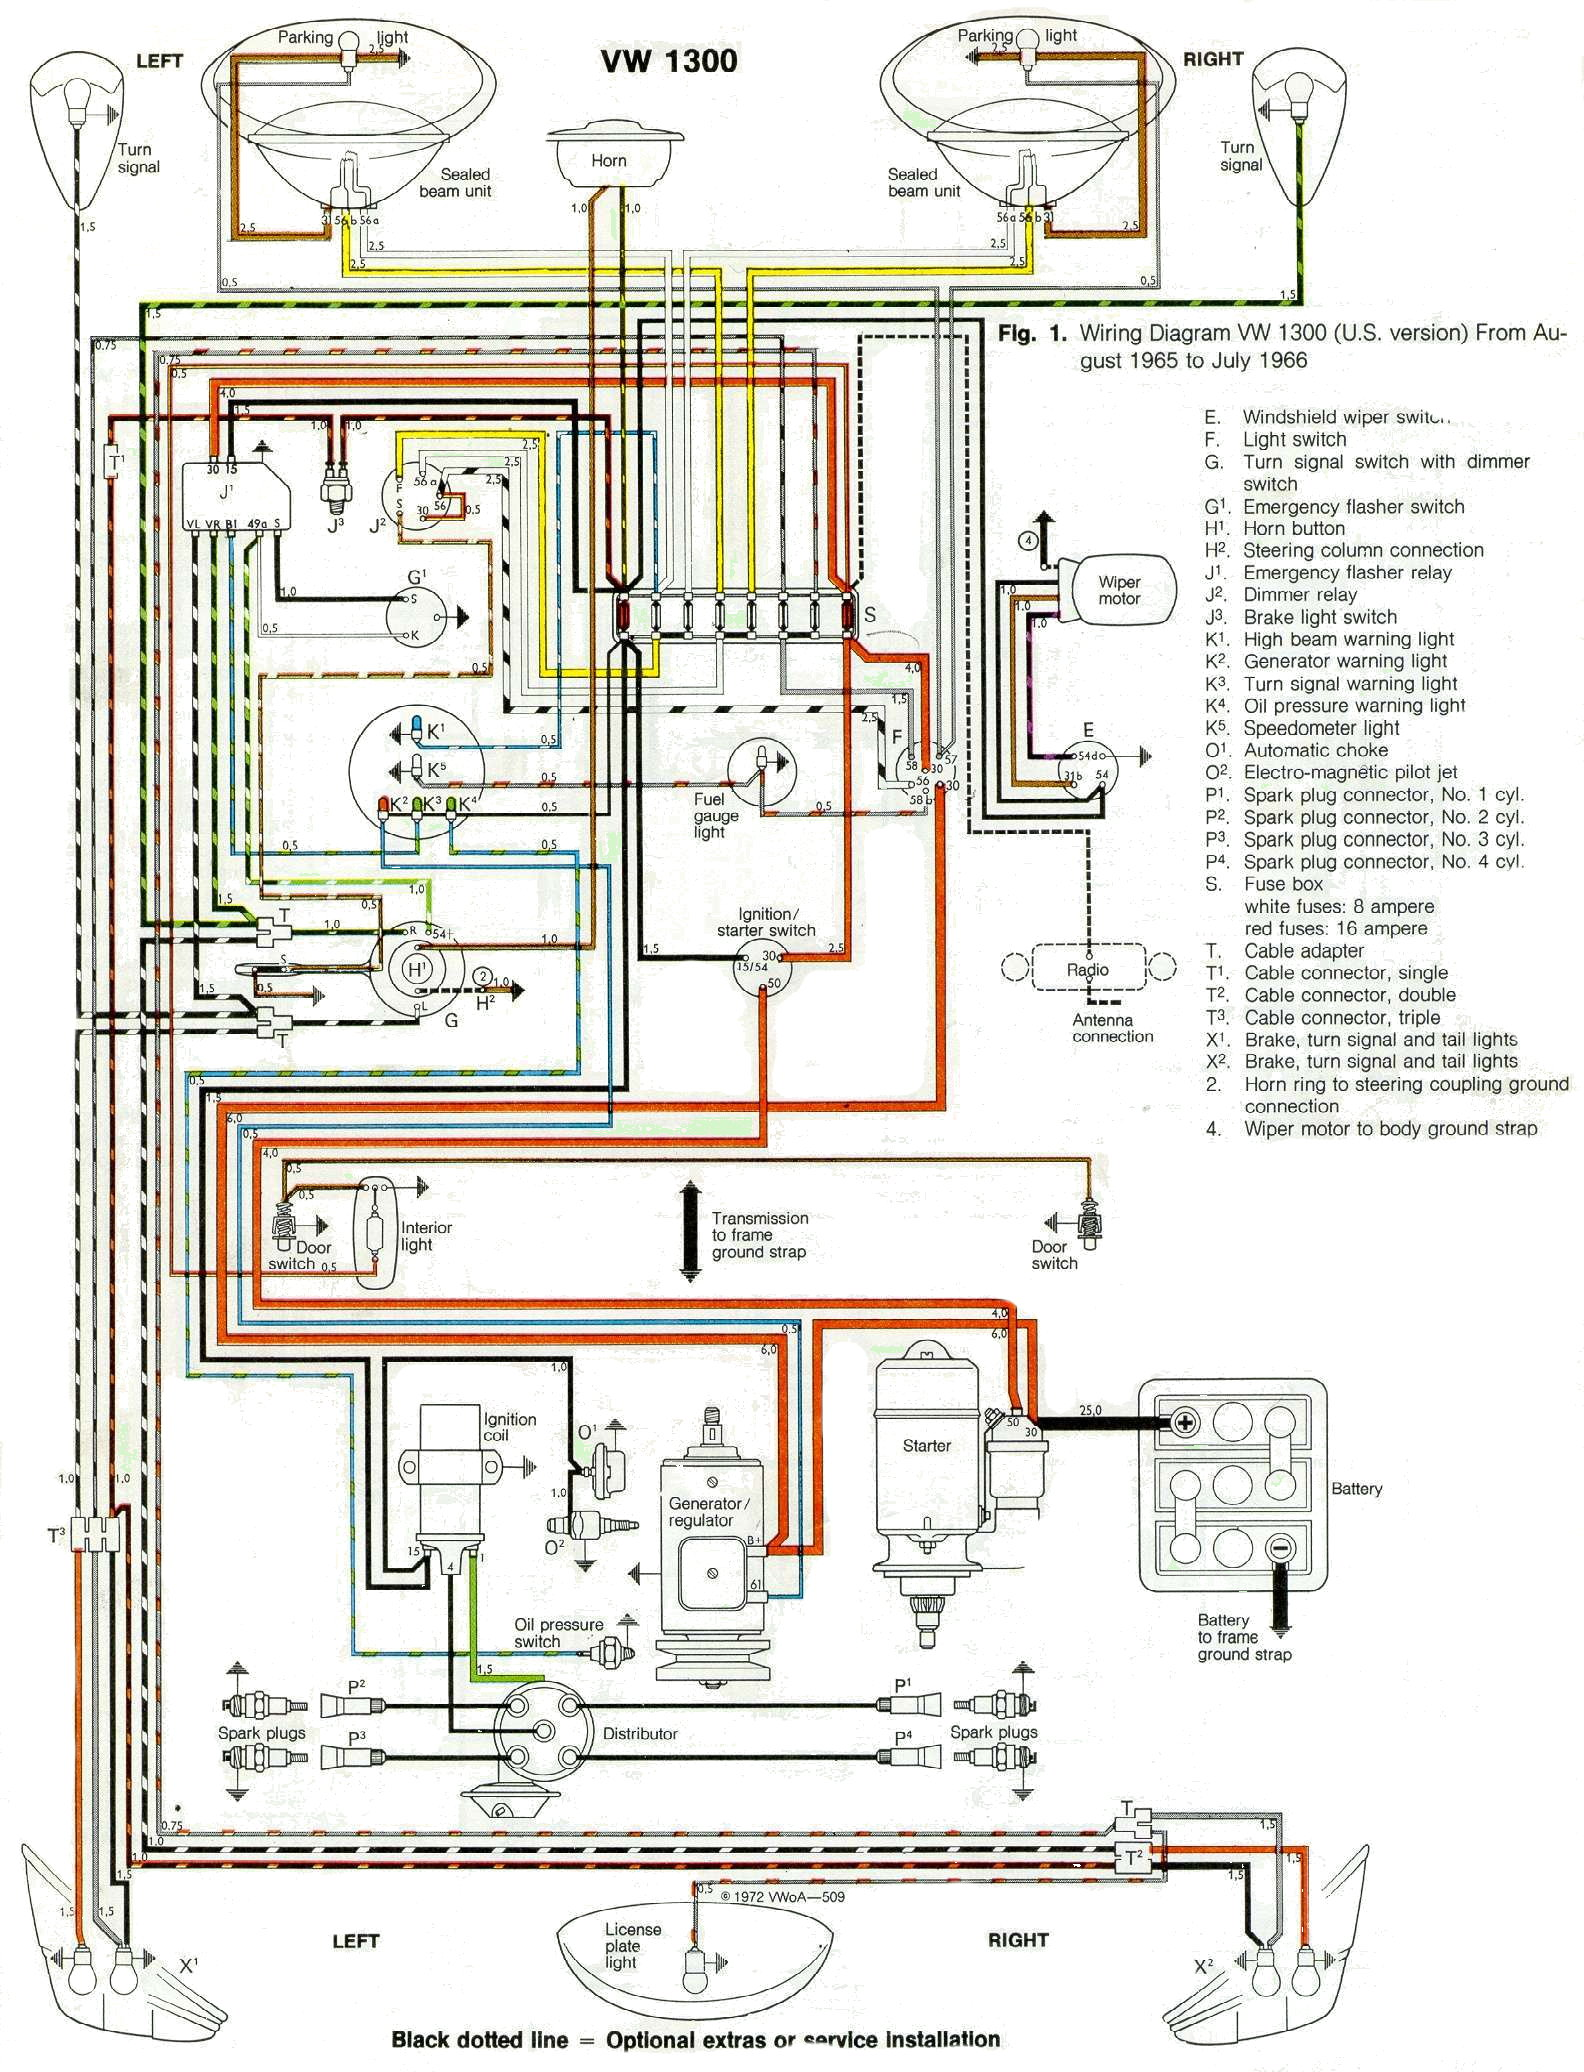 1966 Wiring 1966 wiring diagram jbugs wiring harness at crackthecode.co